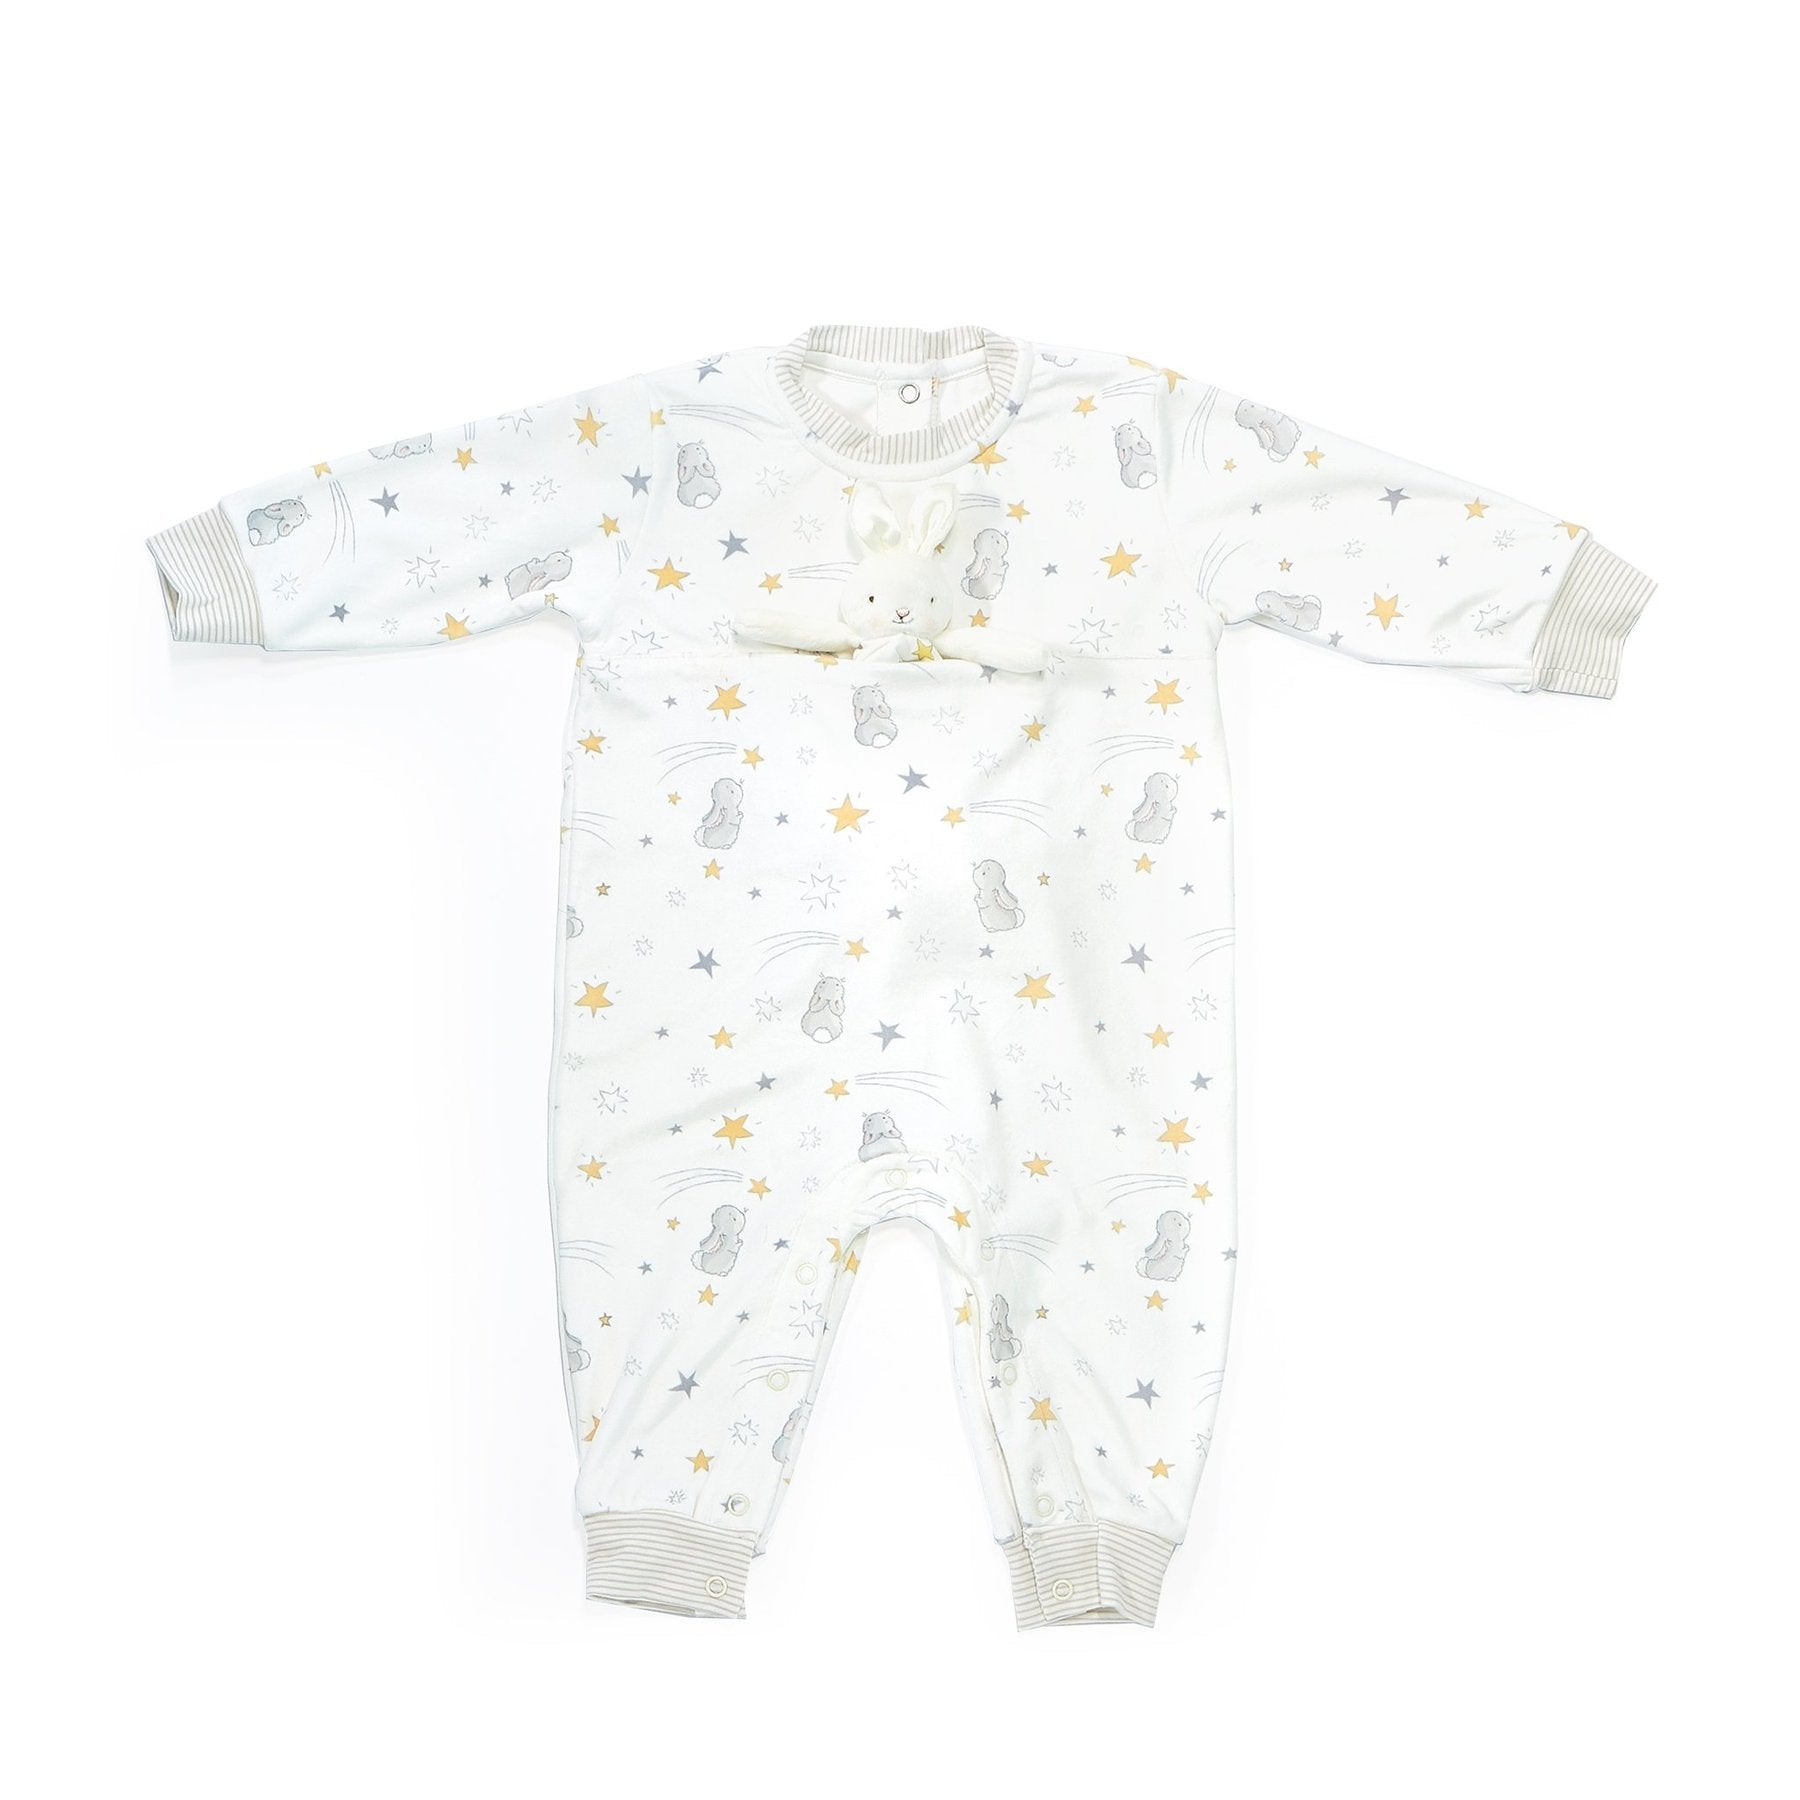 Bloom Playsuit & Binkie Set